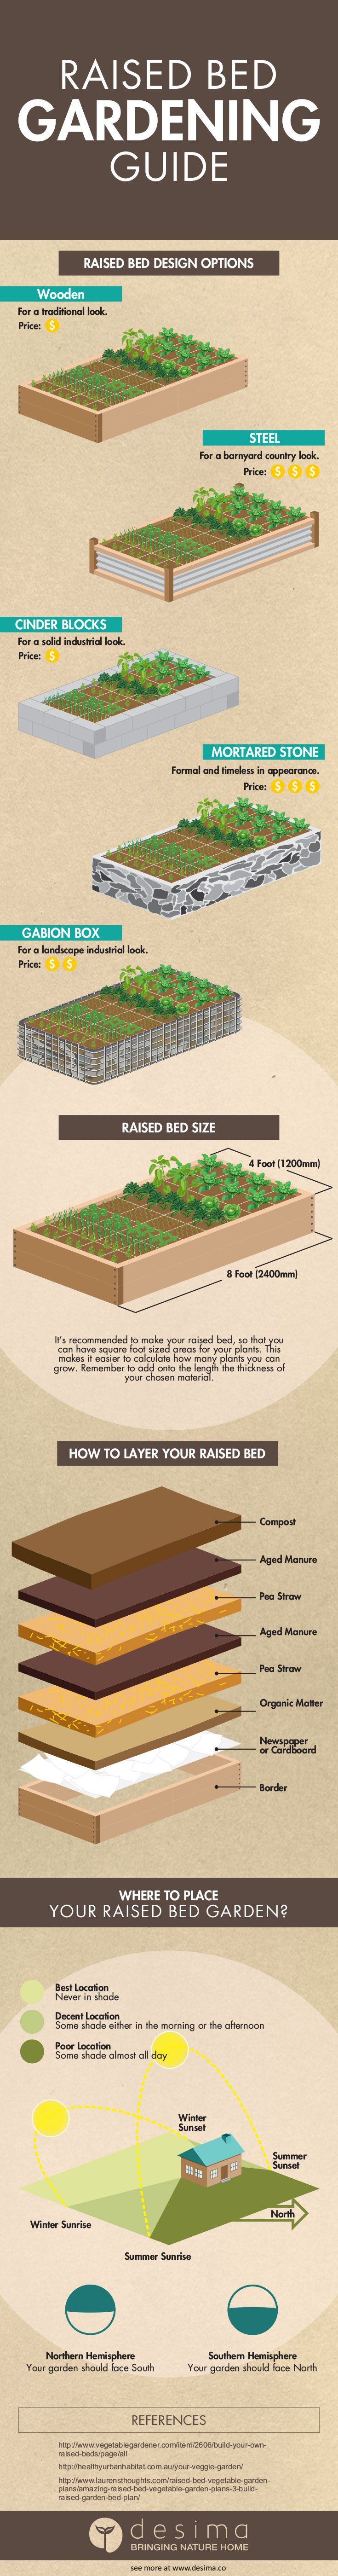 Use this guide to help you build the perfect raised bed garden for your  home. Raised bed gardening makes it easier to control weeds, pest control,  planting and harvesting. It's important to choose the best materials for  your budget. Raised beds also make it easier on your back. Using a quality  soil mix as outlined below will help you increase yeilds and quality of  your harvest.  Raised Bed Gardening Guide Infographic  Remember if you use this infographic on your website, you must have…